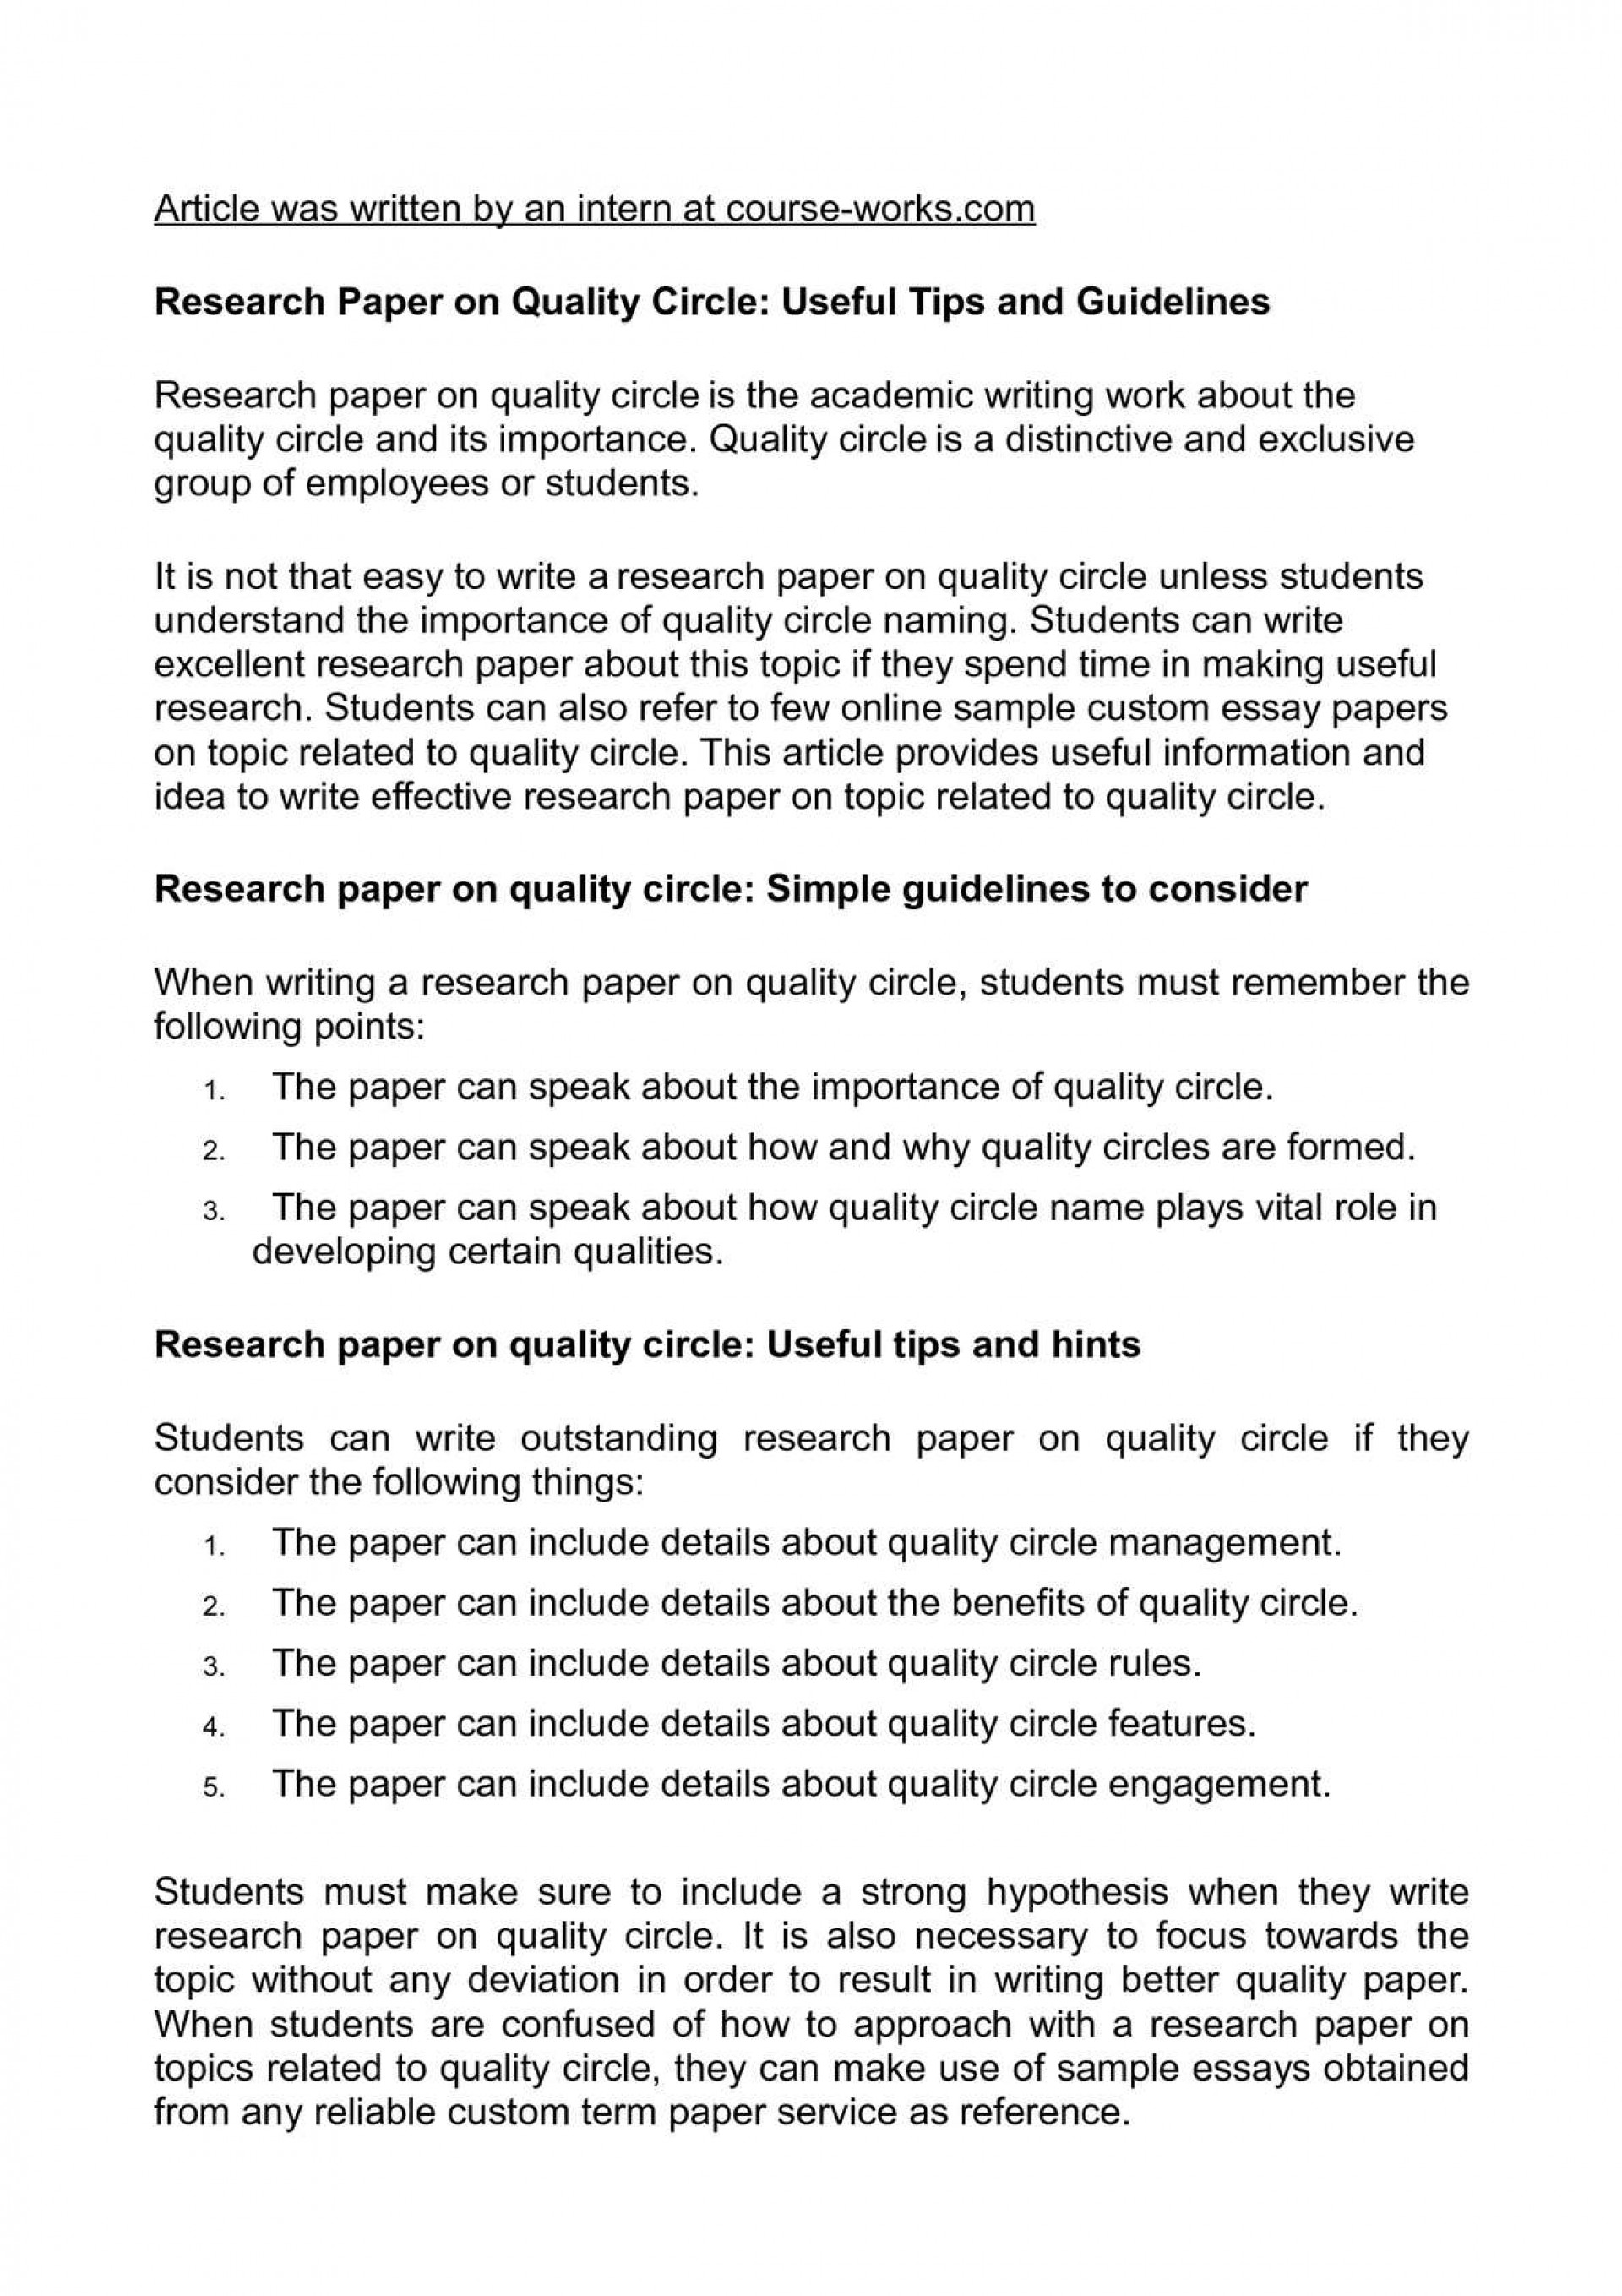 008 Research Paper P1 Topics To Writebout In Shocking Write About A Health On 1920